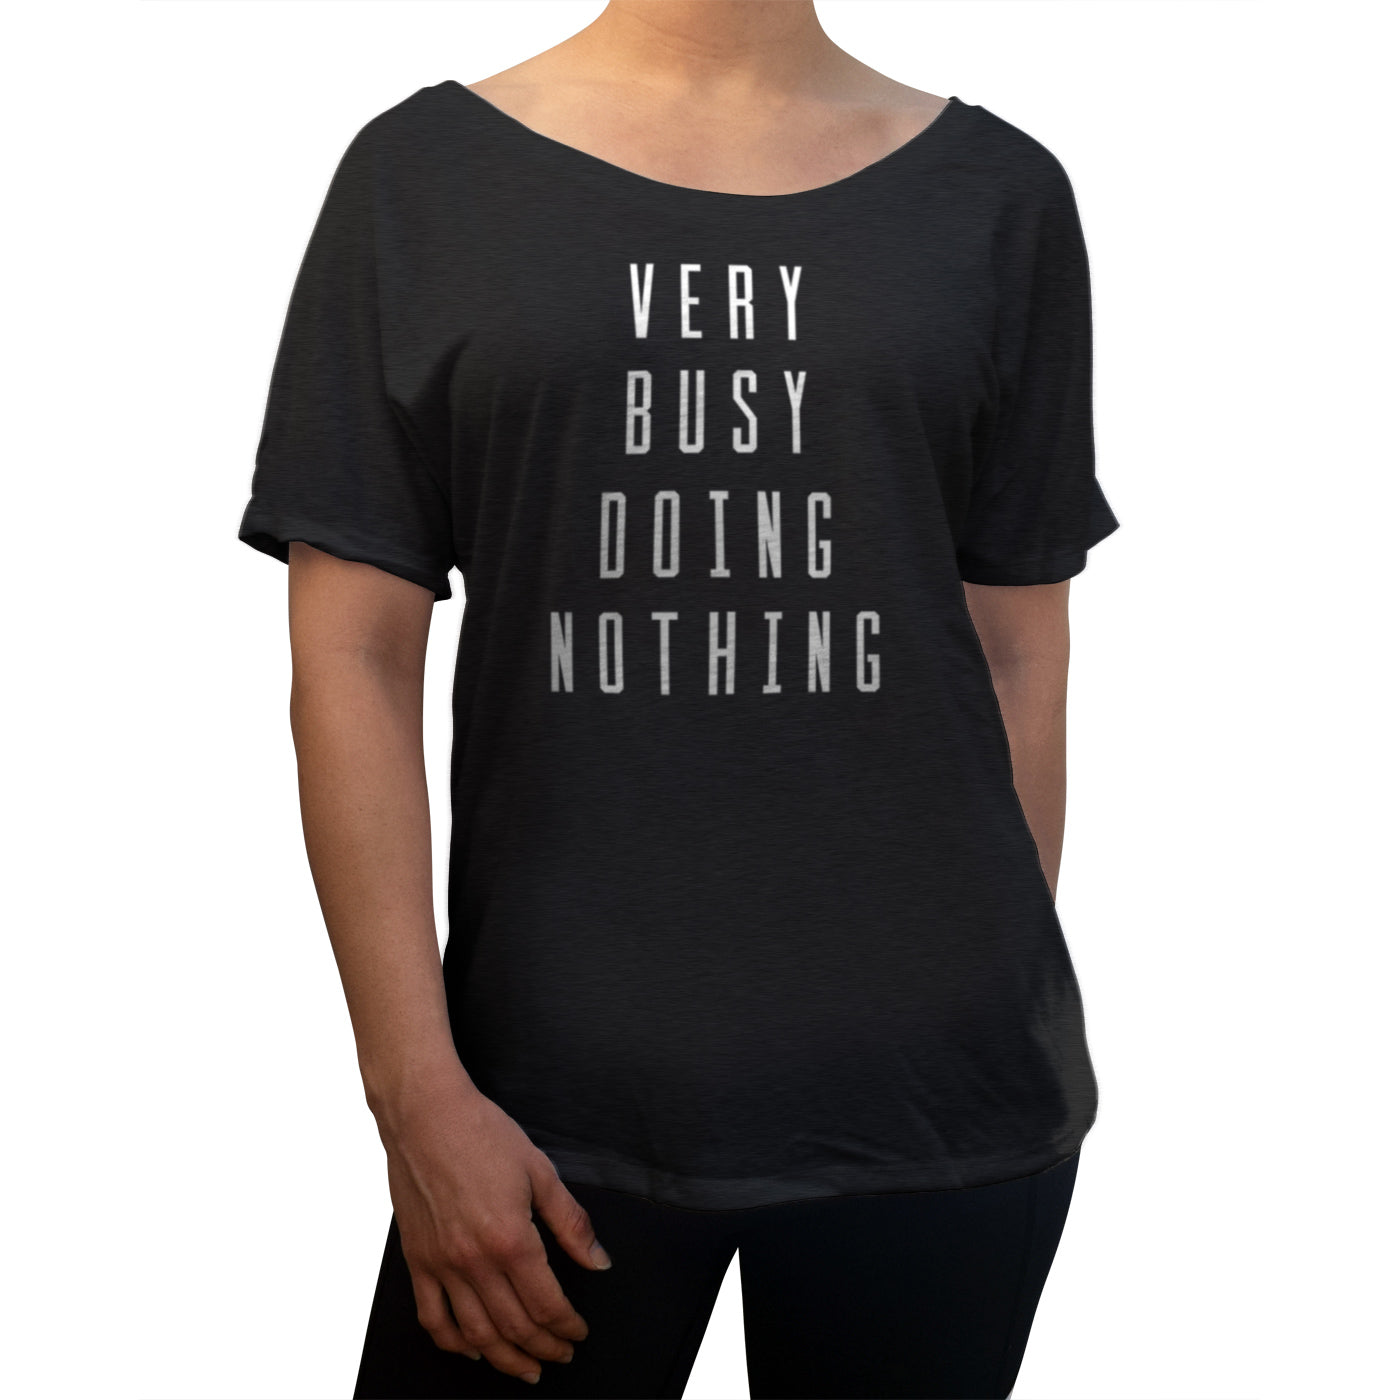 Women's Very Busy Doing Nothing Scoop Neck T-Shirt